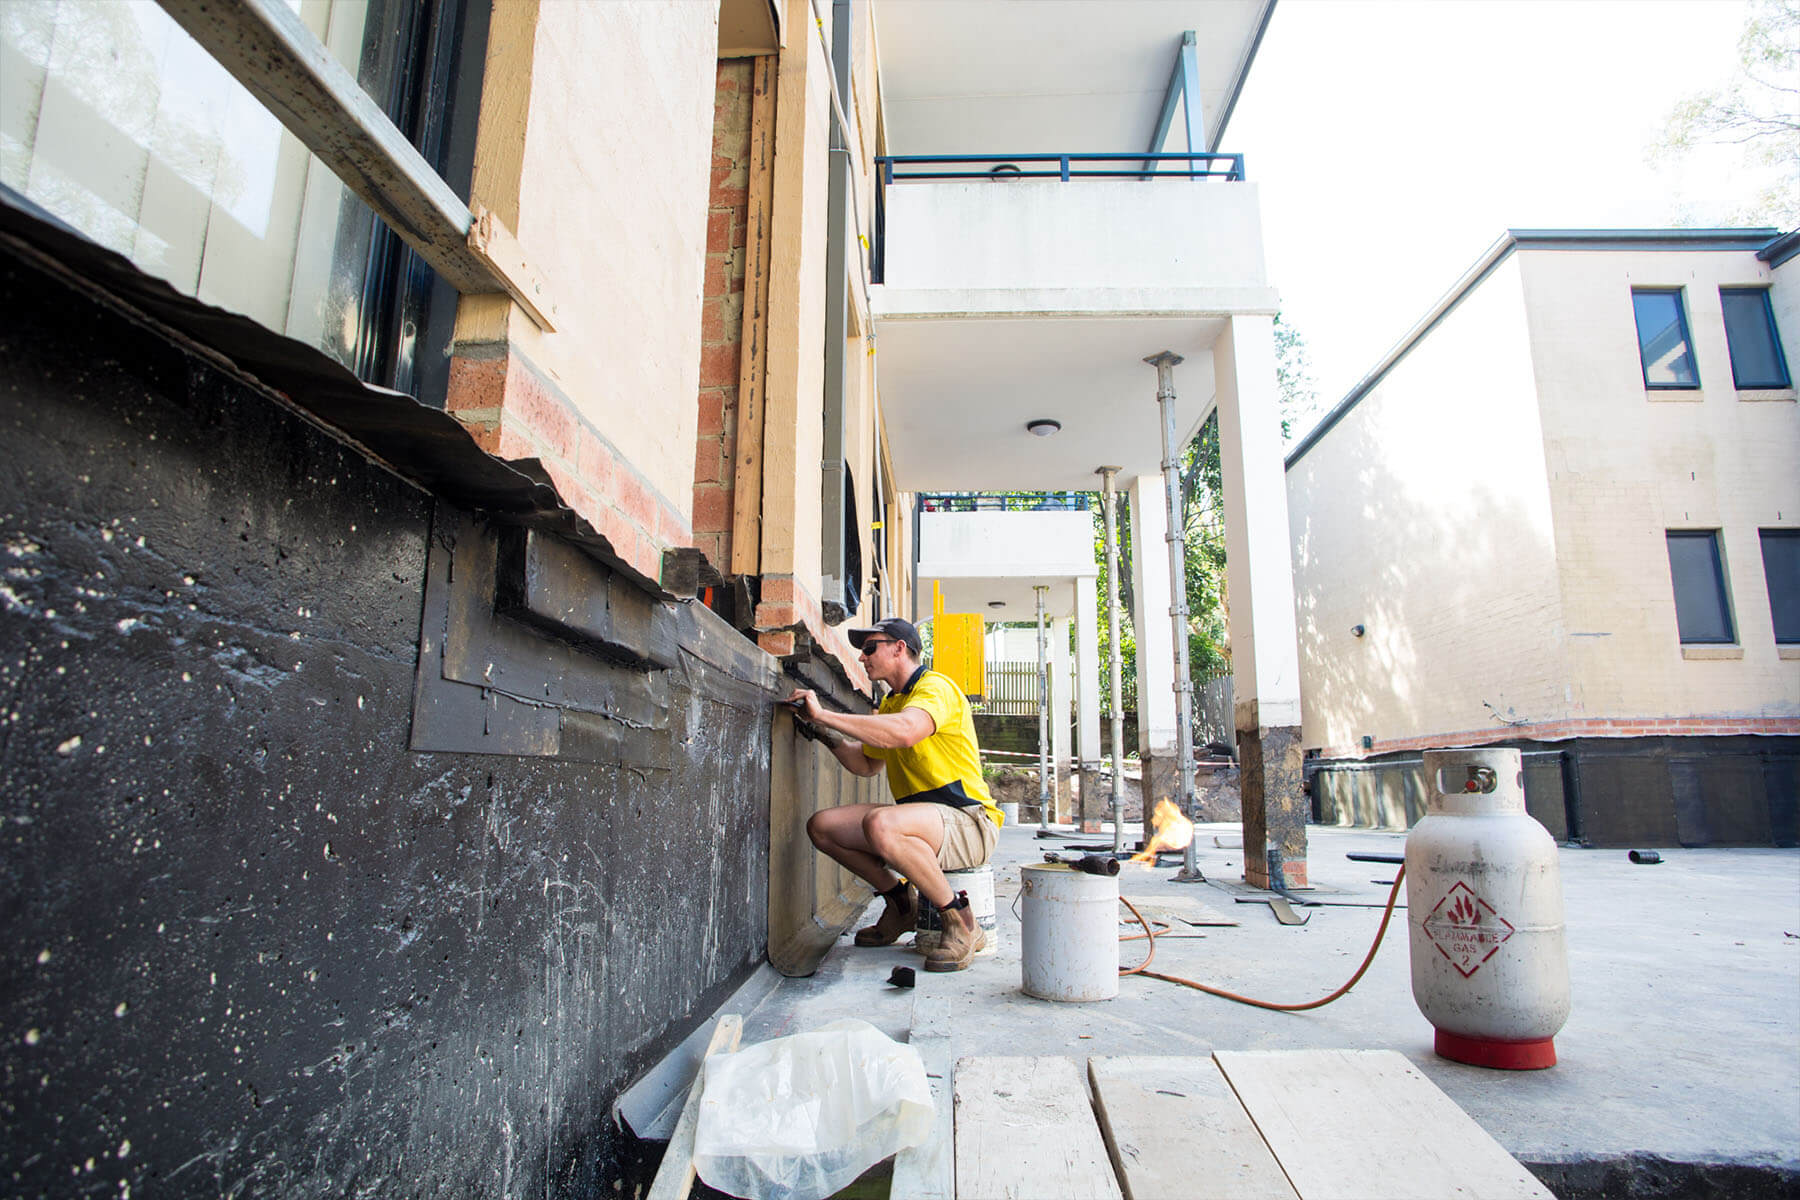 Application of Waterproofing to Terrace - Building Structural Issues - Remedial Building Services